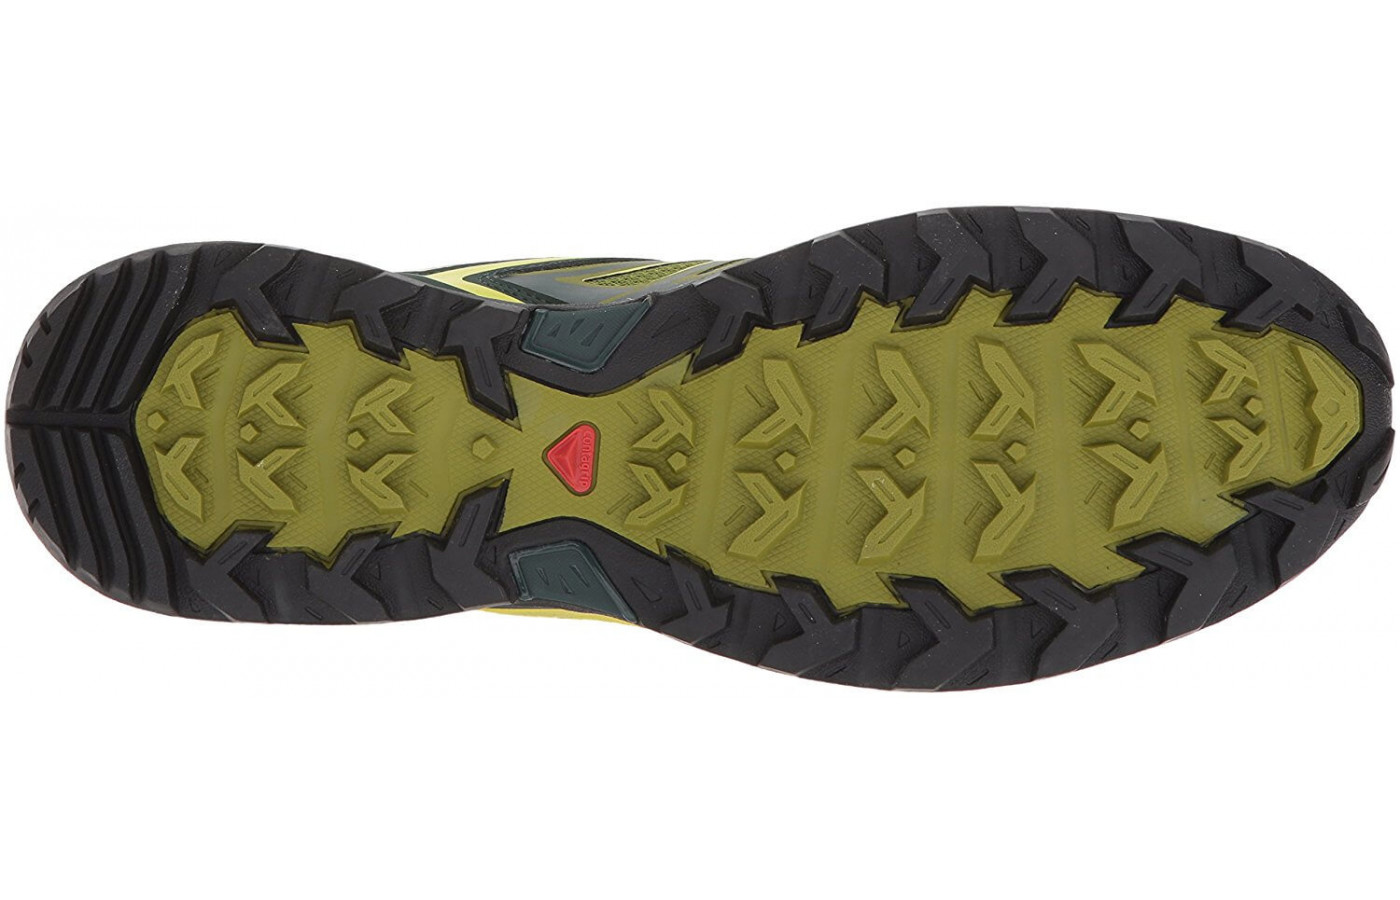 A bottom view of the Salomon X Ultra 3.